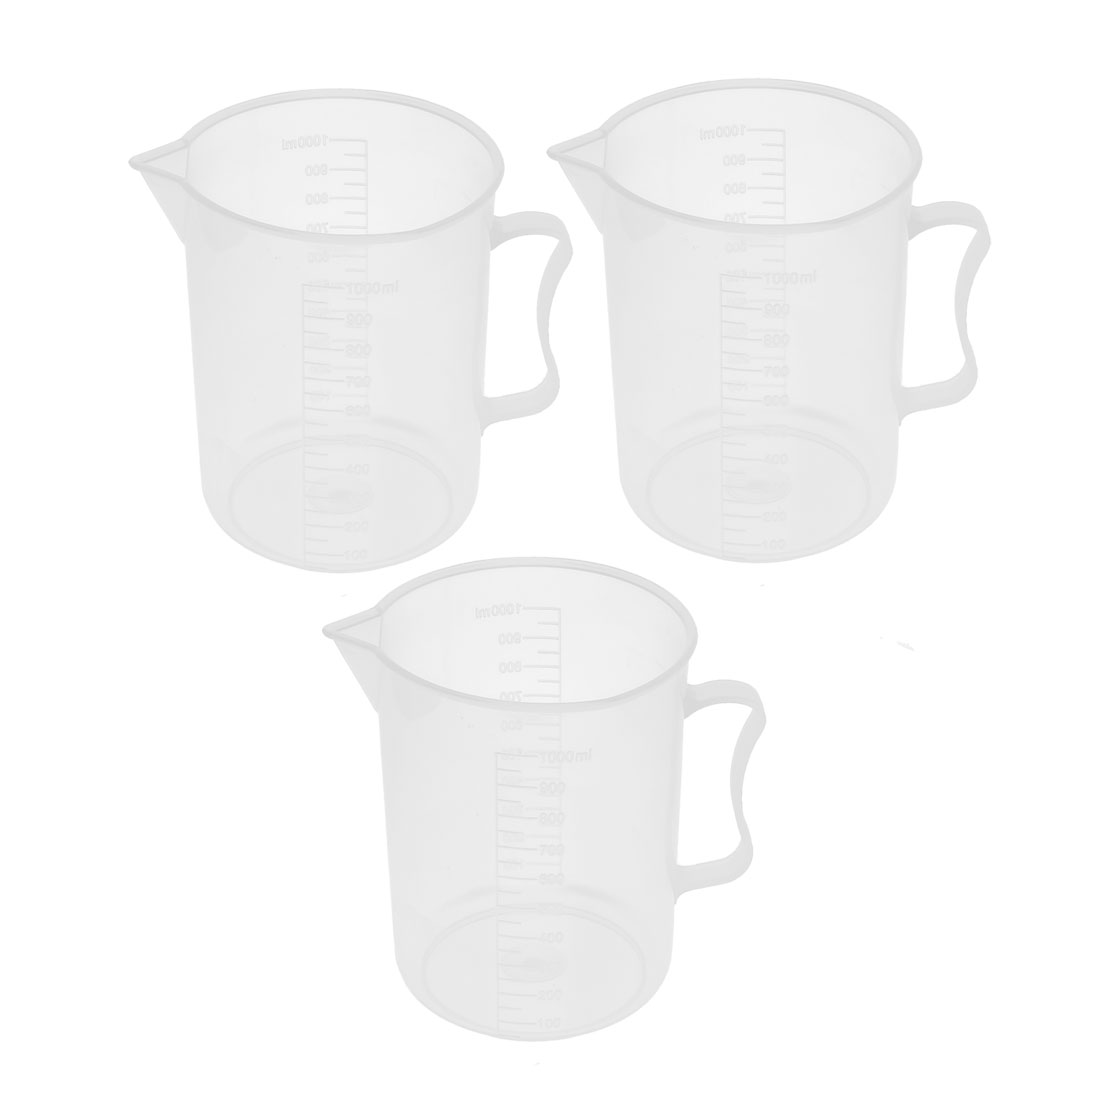 3 Pcs School Lab Plastic Water Liquid Container Measuring Testing Beaker 1000ml